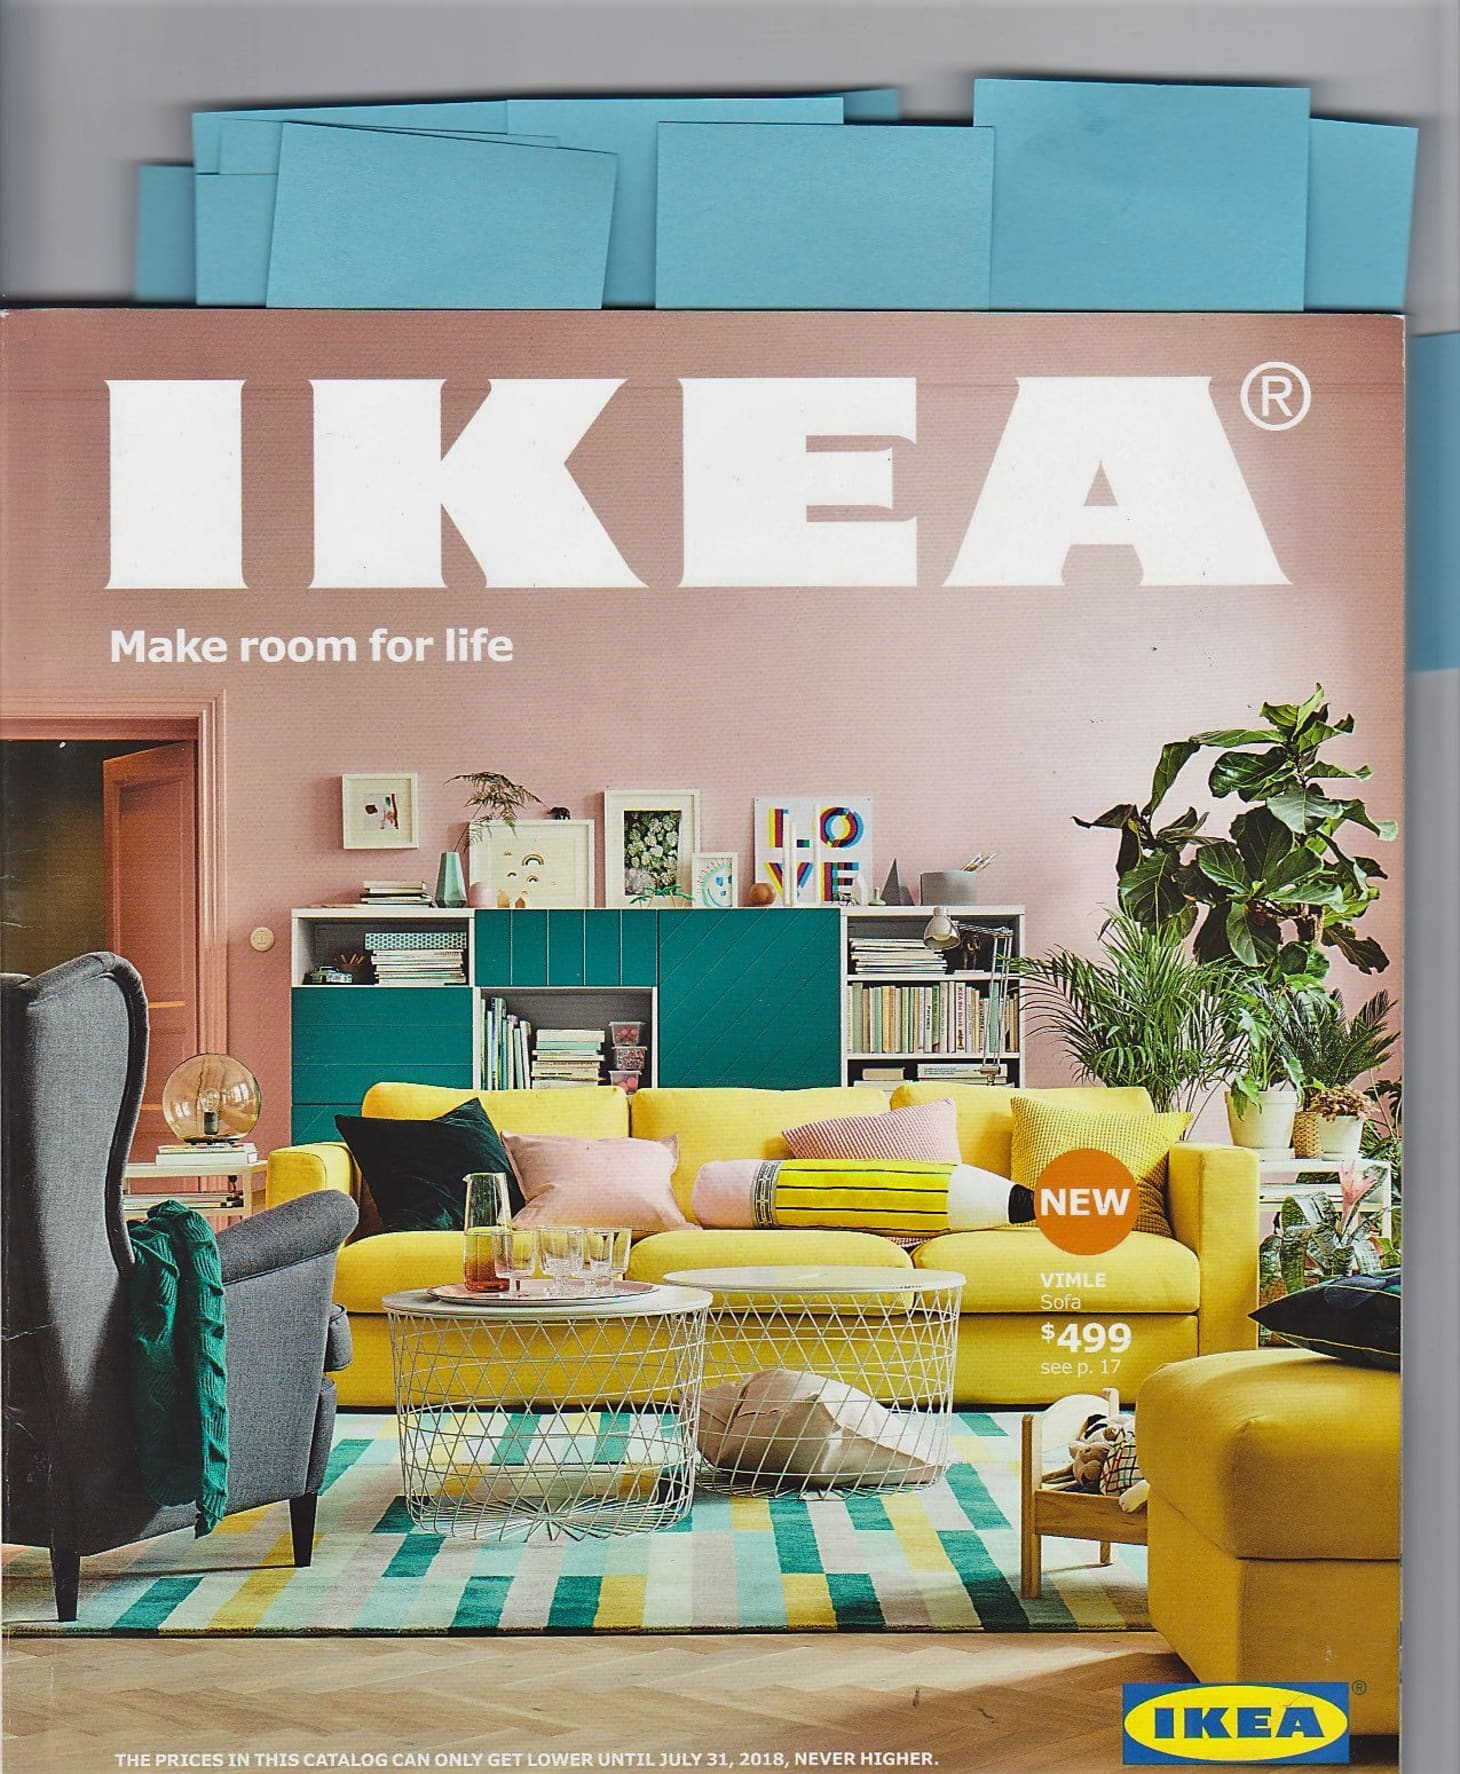 The Best Store Catalogs for Design Inspiration | Apartment ...